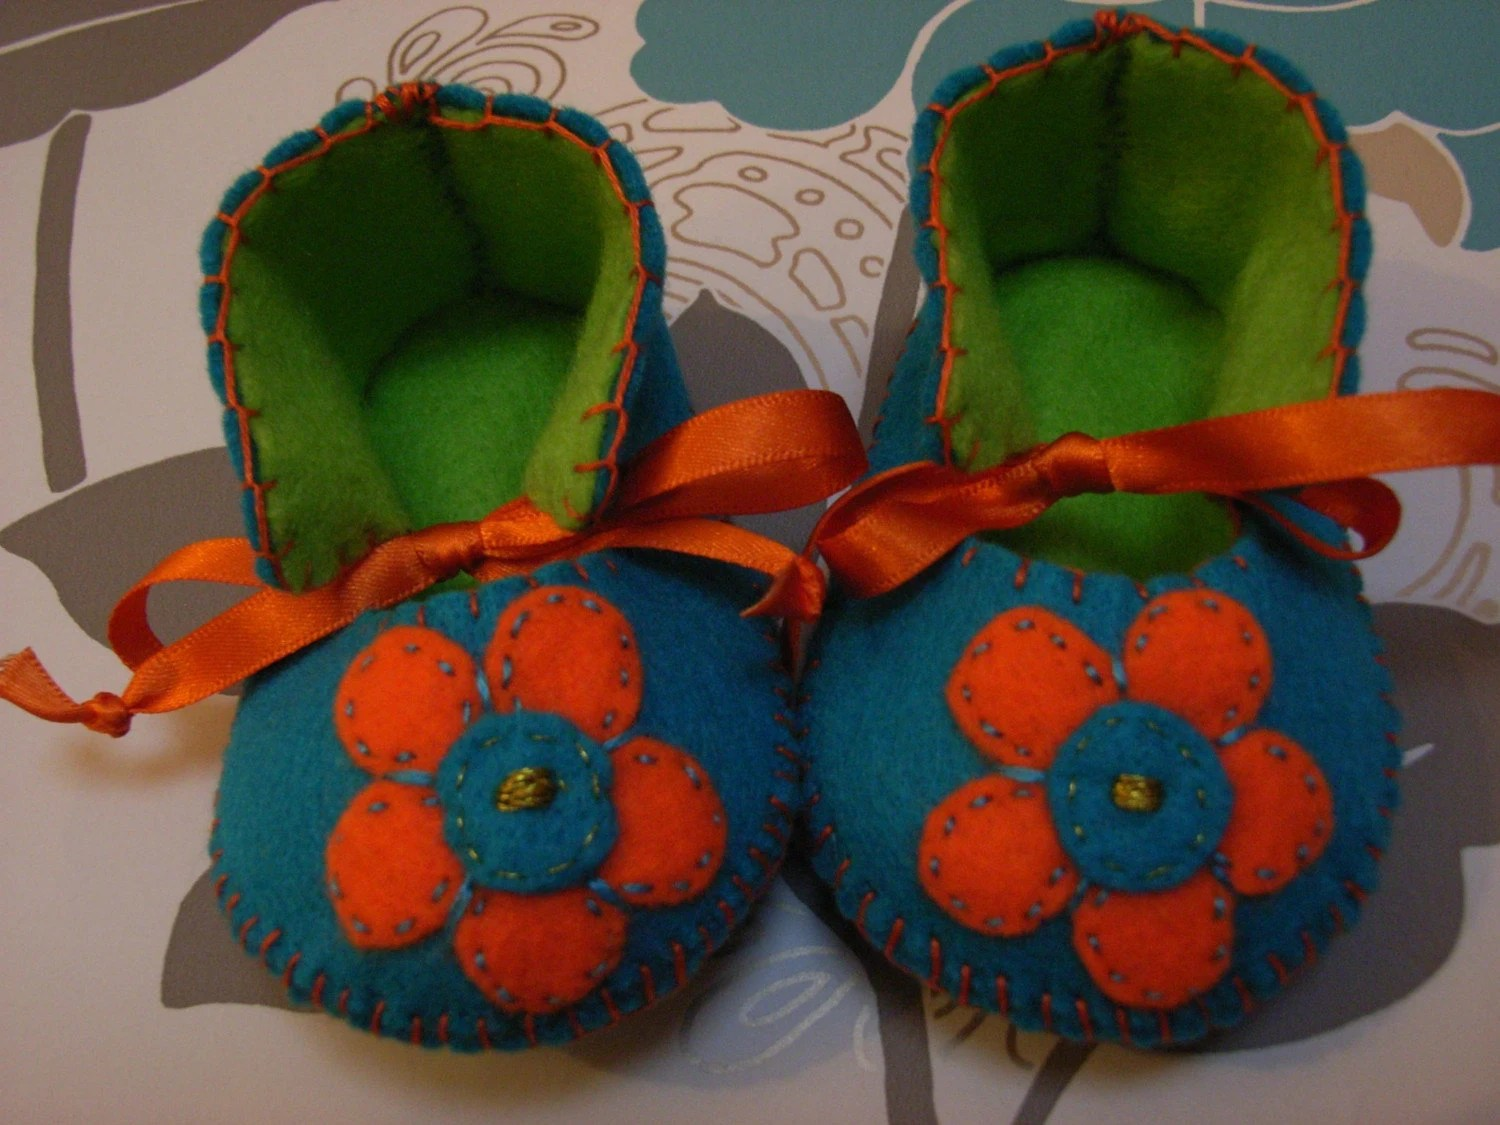 BEAUTIFUL AND UNIQUE TURQUOISE AND LIME BABY BOOTIES WITH FLOWERS ON THEIR FRONT-HAND STITCHED